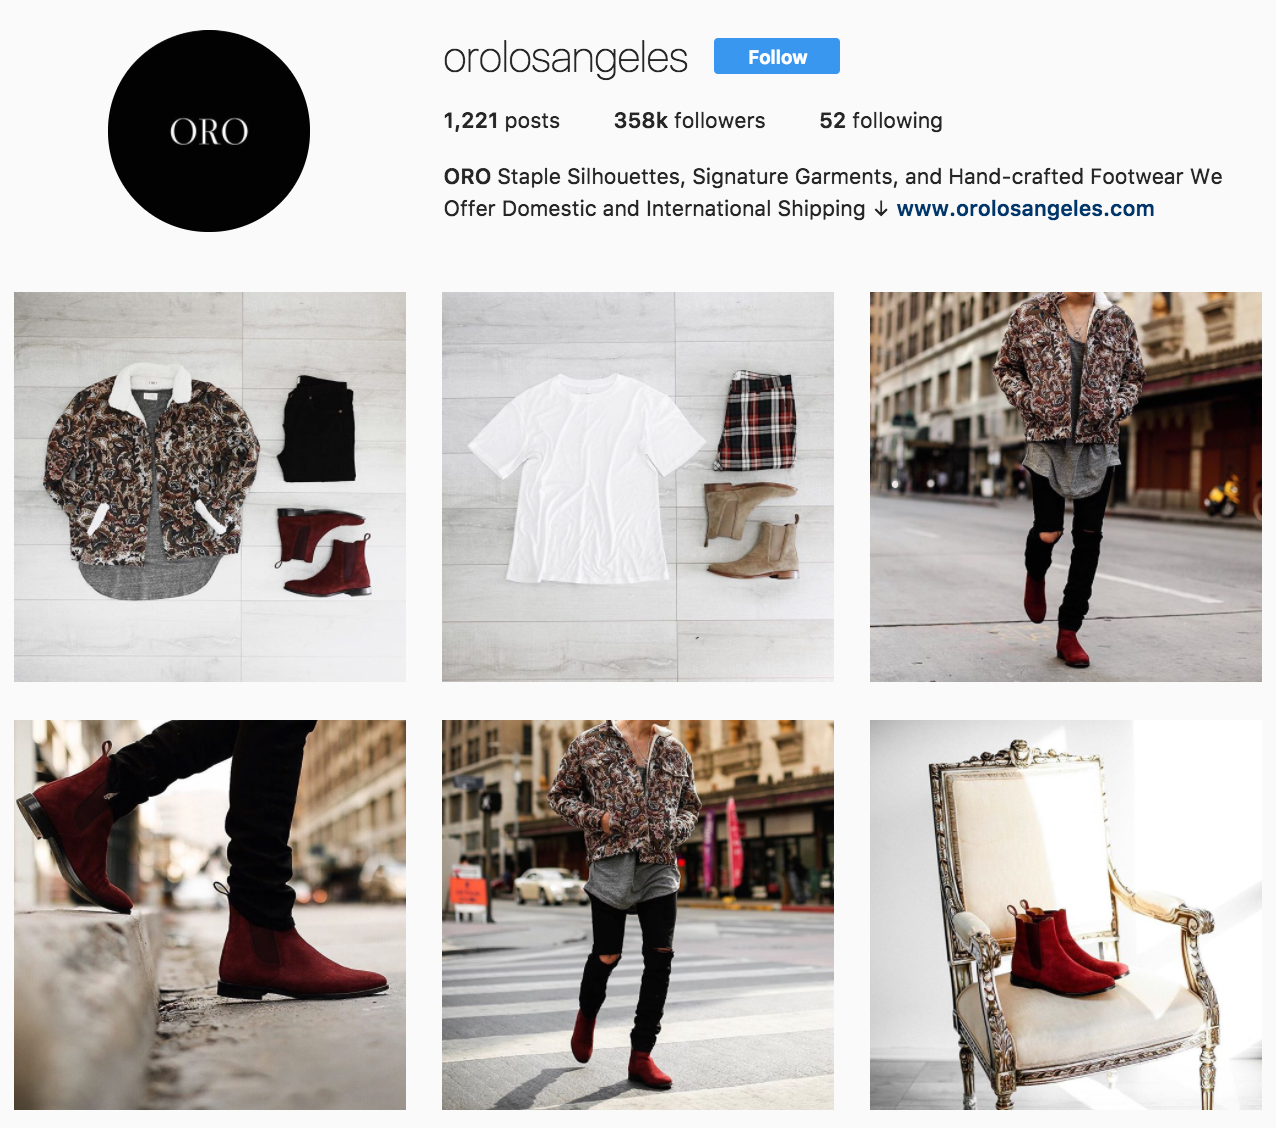 ORO Los Angeles' Instagram profile